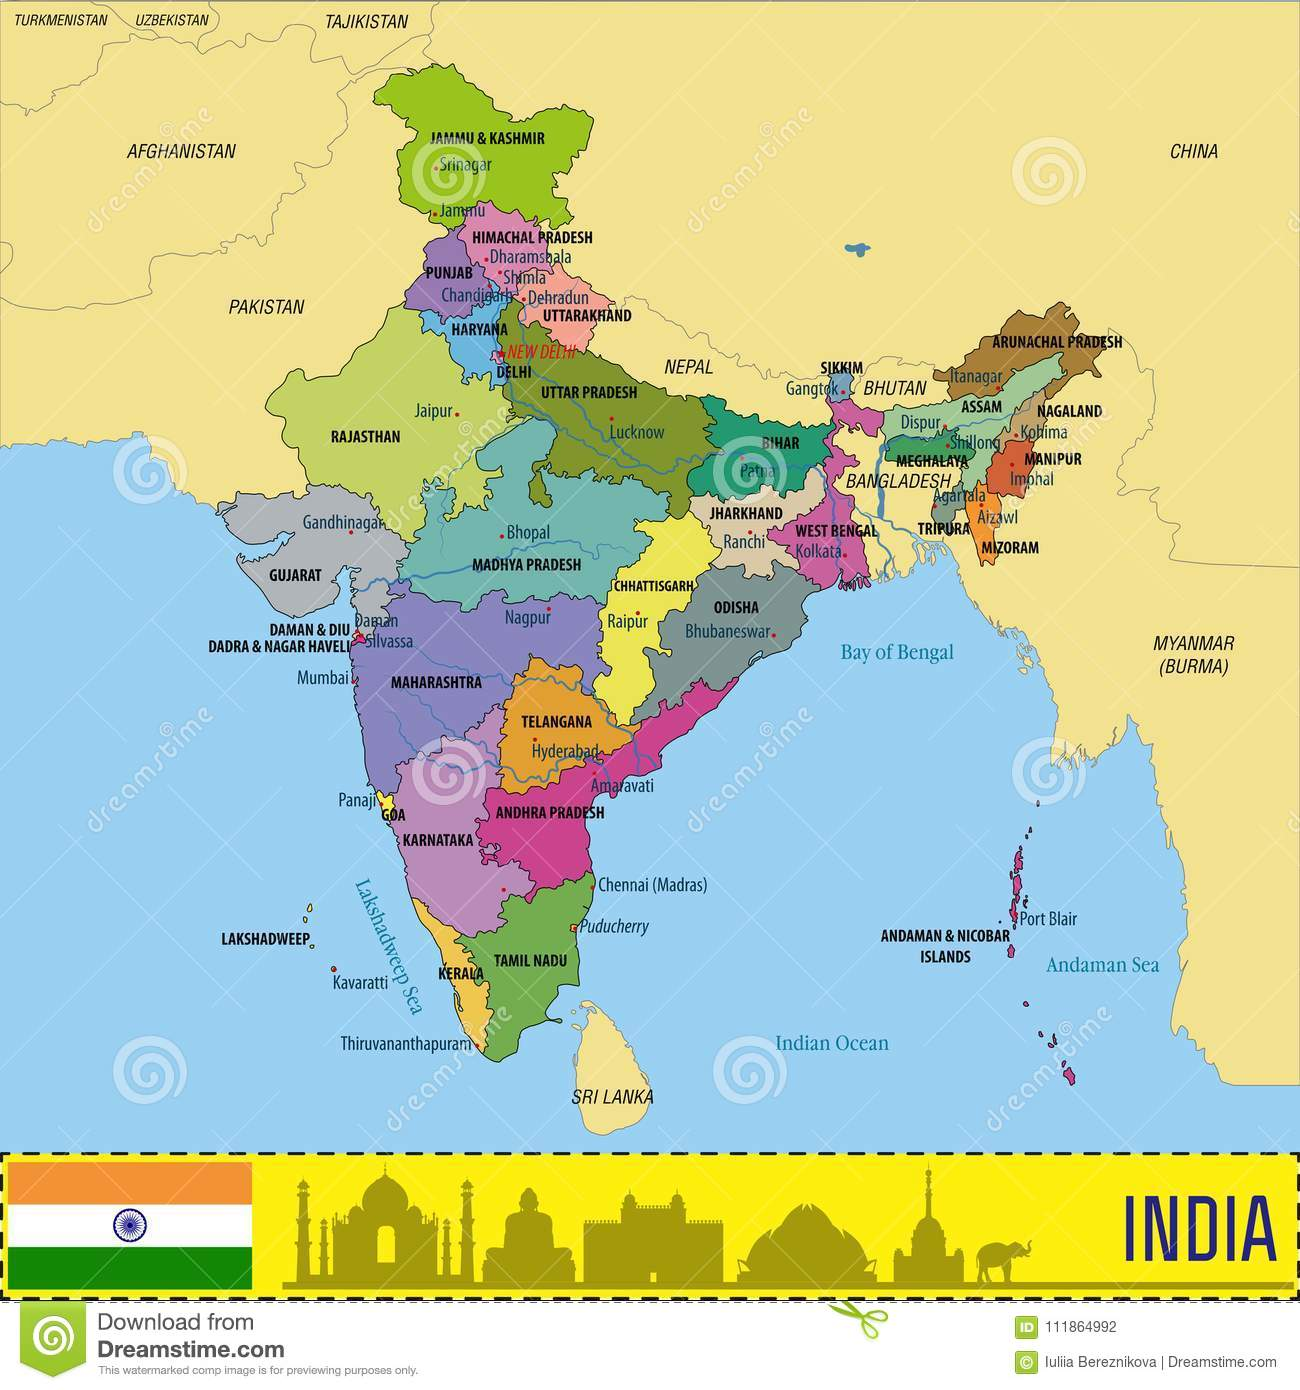 Cartina India In Italiano.Mappa Politica Di Vettore Dell India Illustrazione